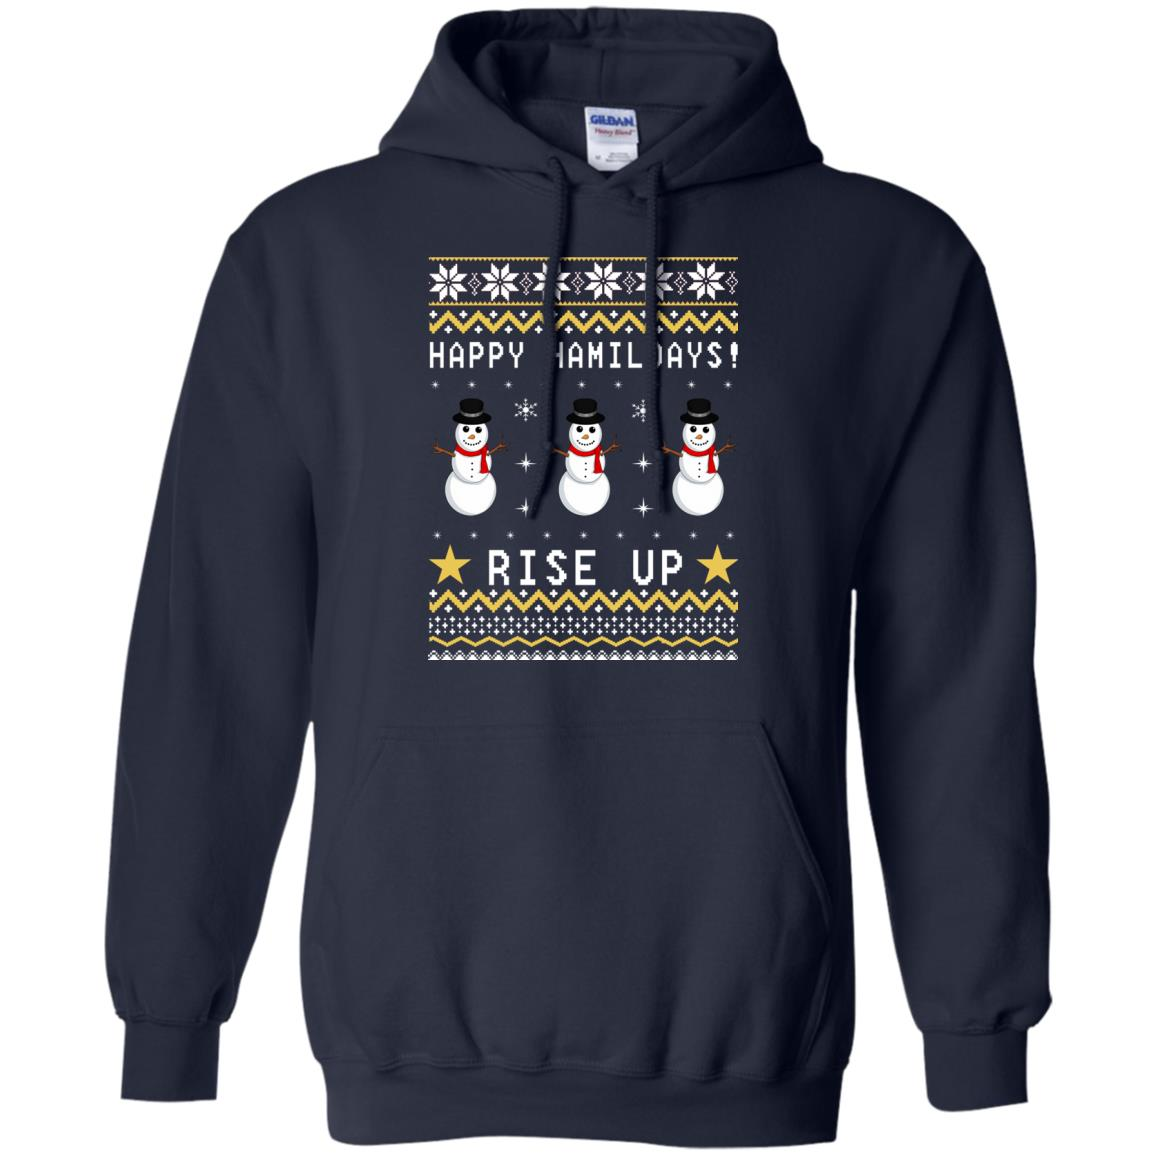 Happy Hamildays Rise Up Christmas Ugly Sweater, Shirt - image 3395